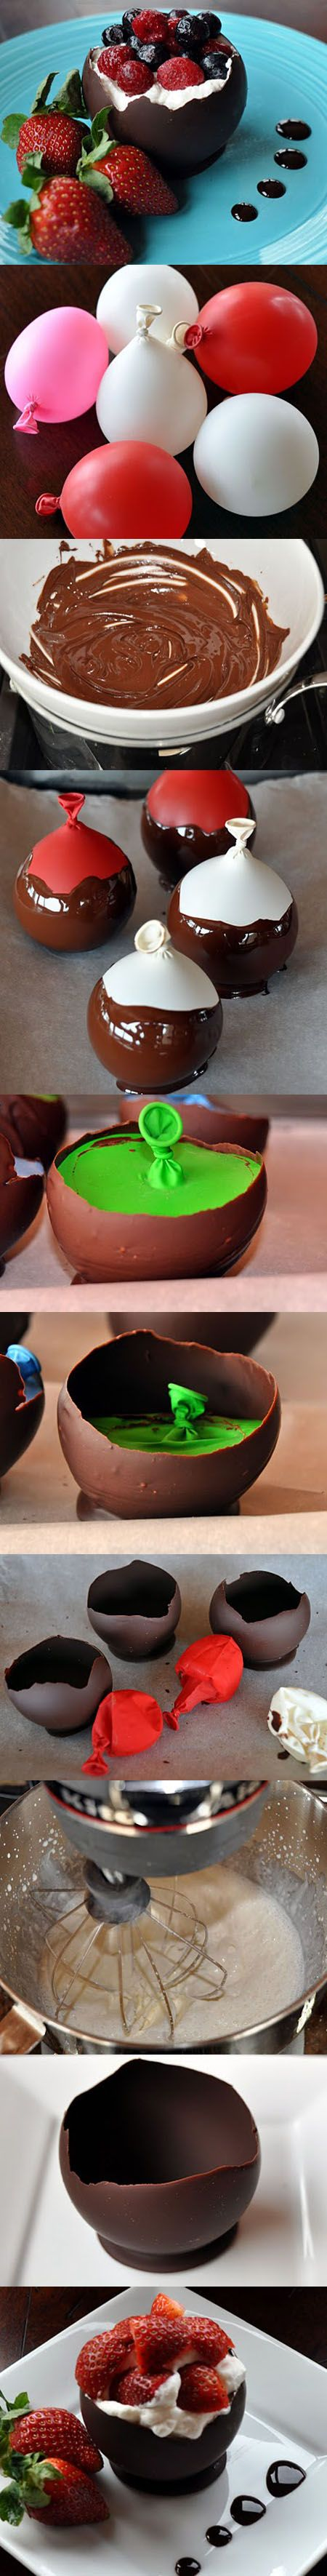 Chocolate bowl! Fun! Uh yum!